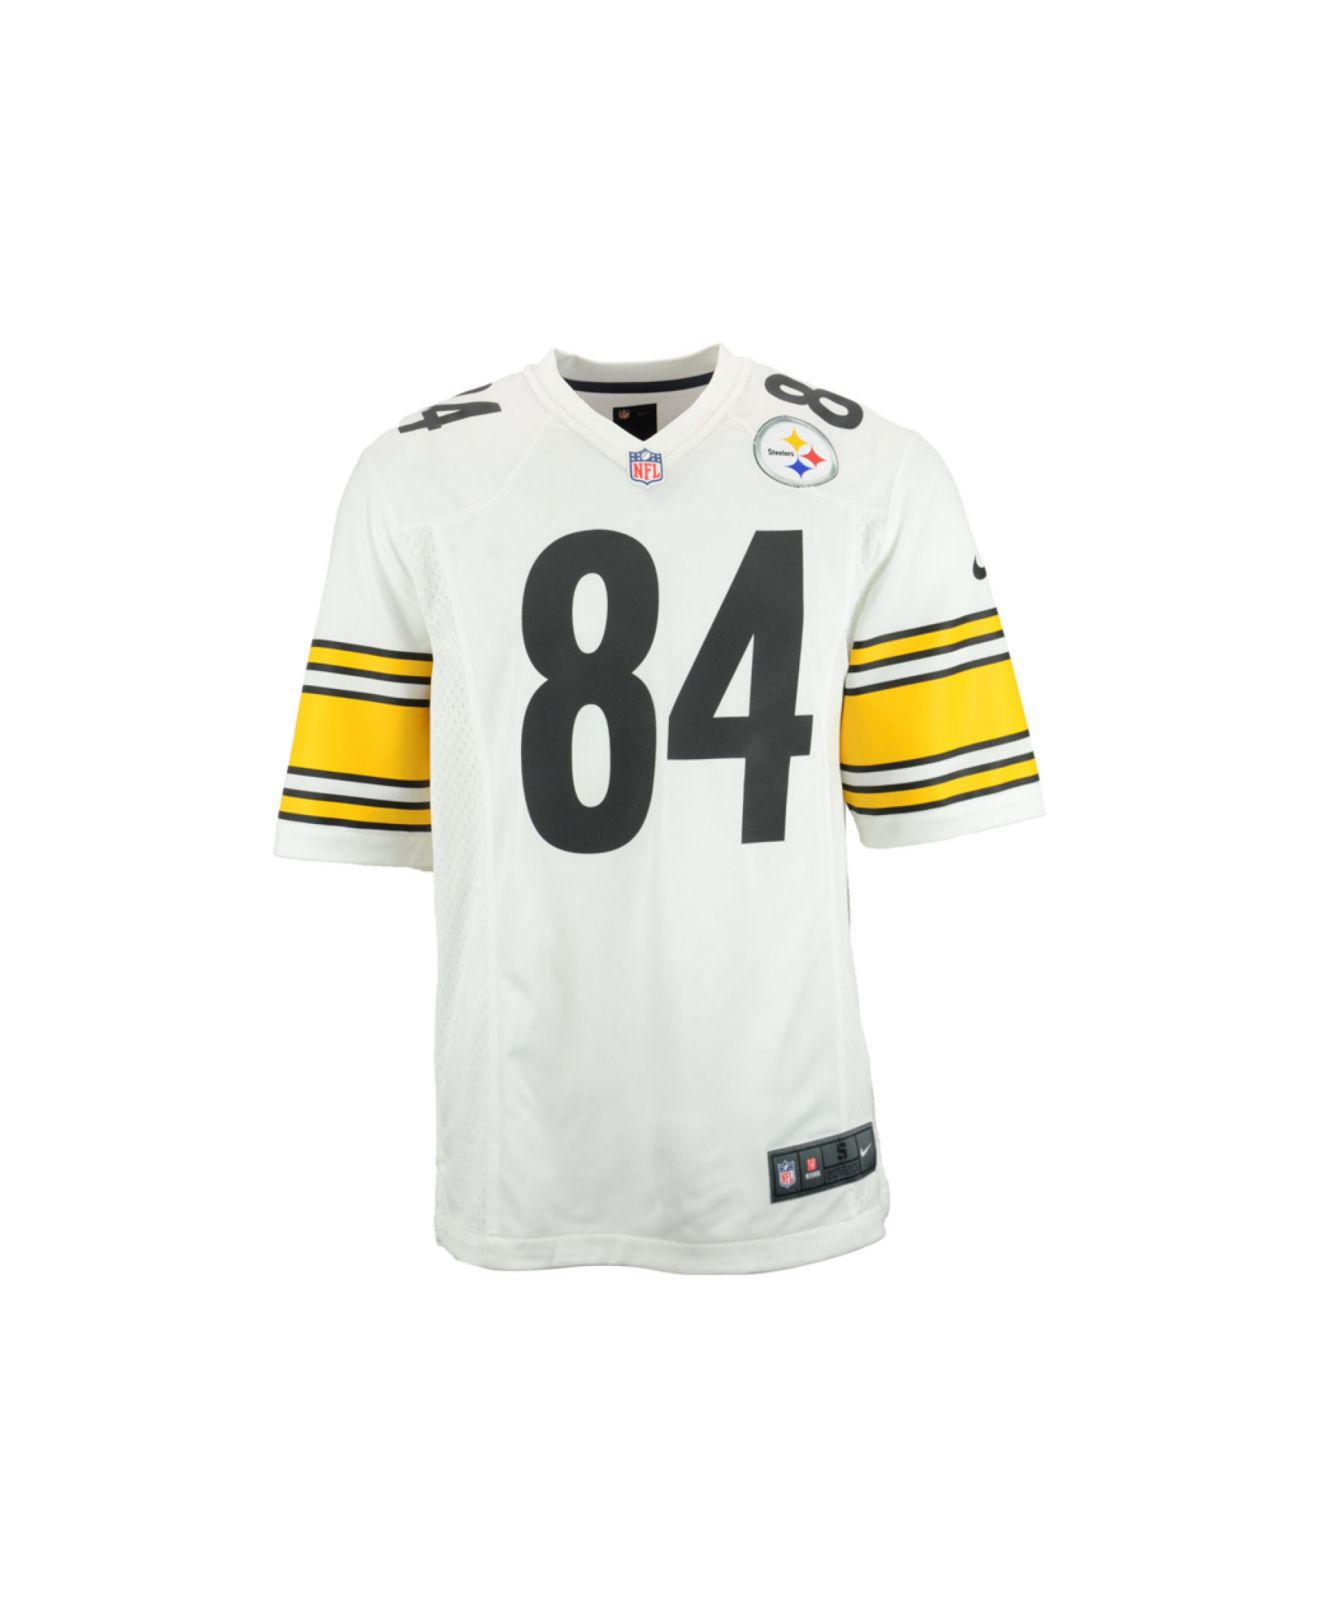 Lyst - Nike Men s Antonio Brown Pittsburgh Steelers Game Jersey in White  for Men 41b2384d0